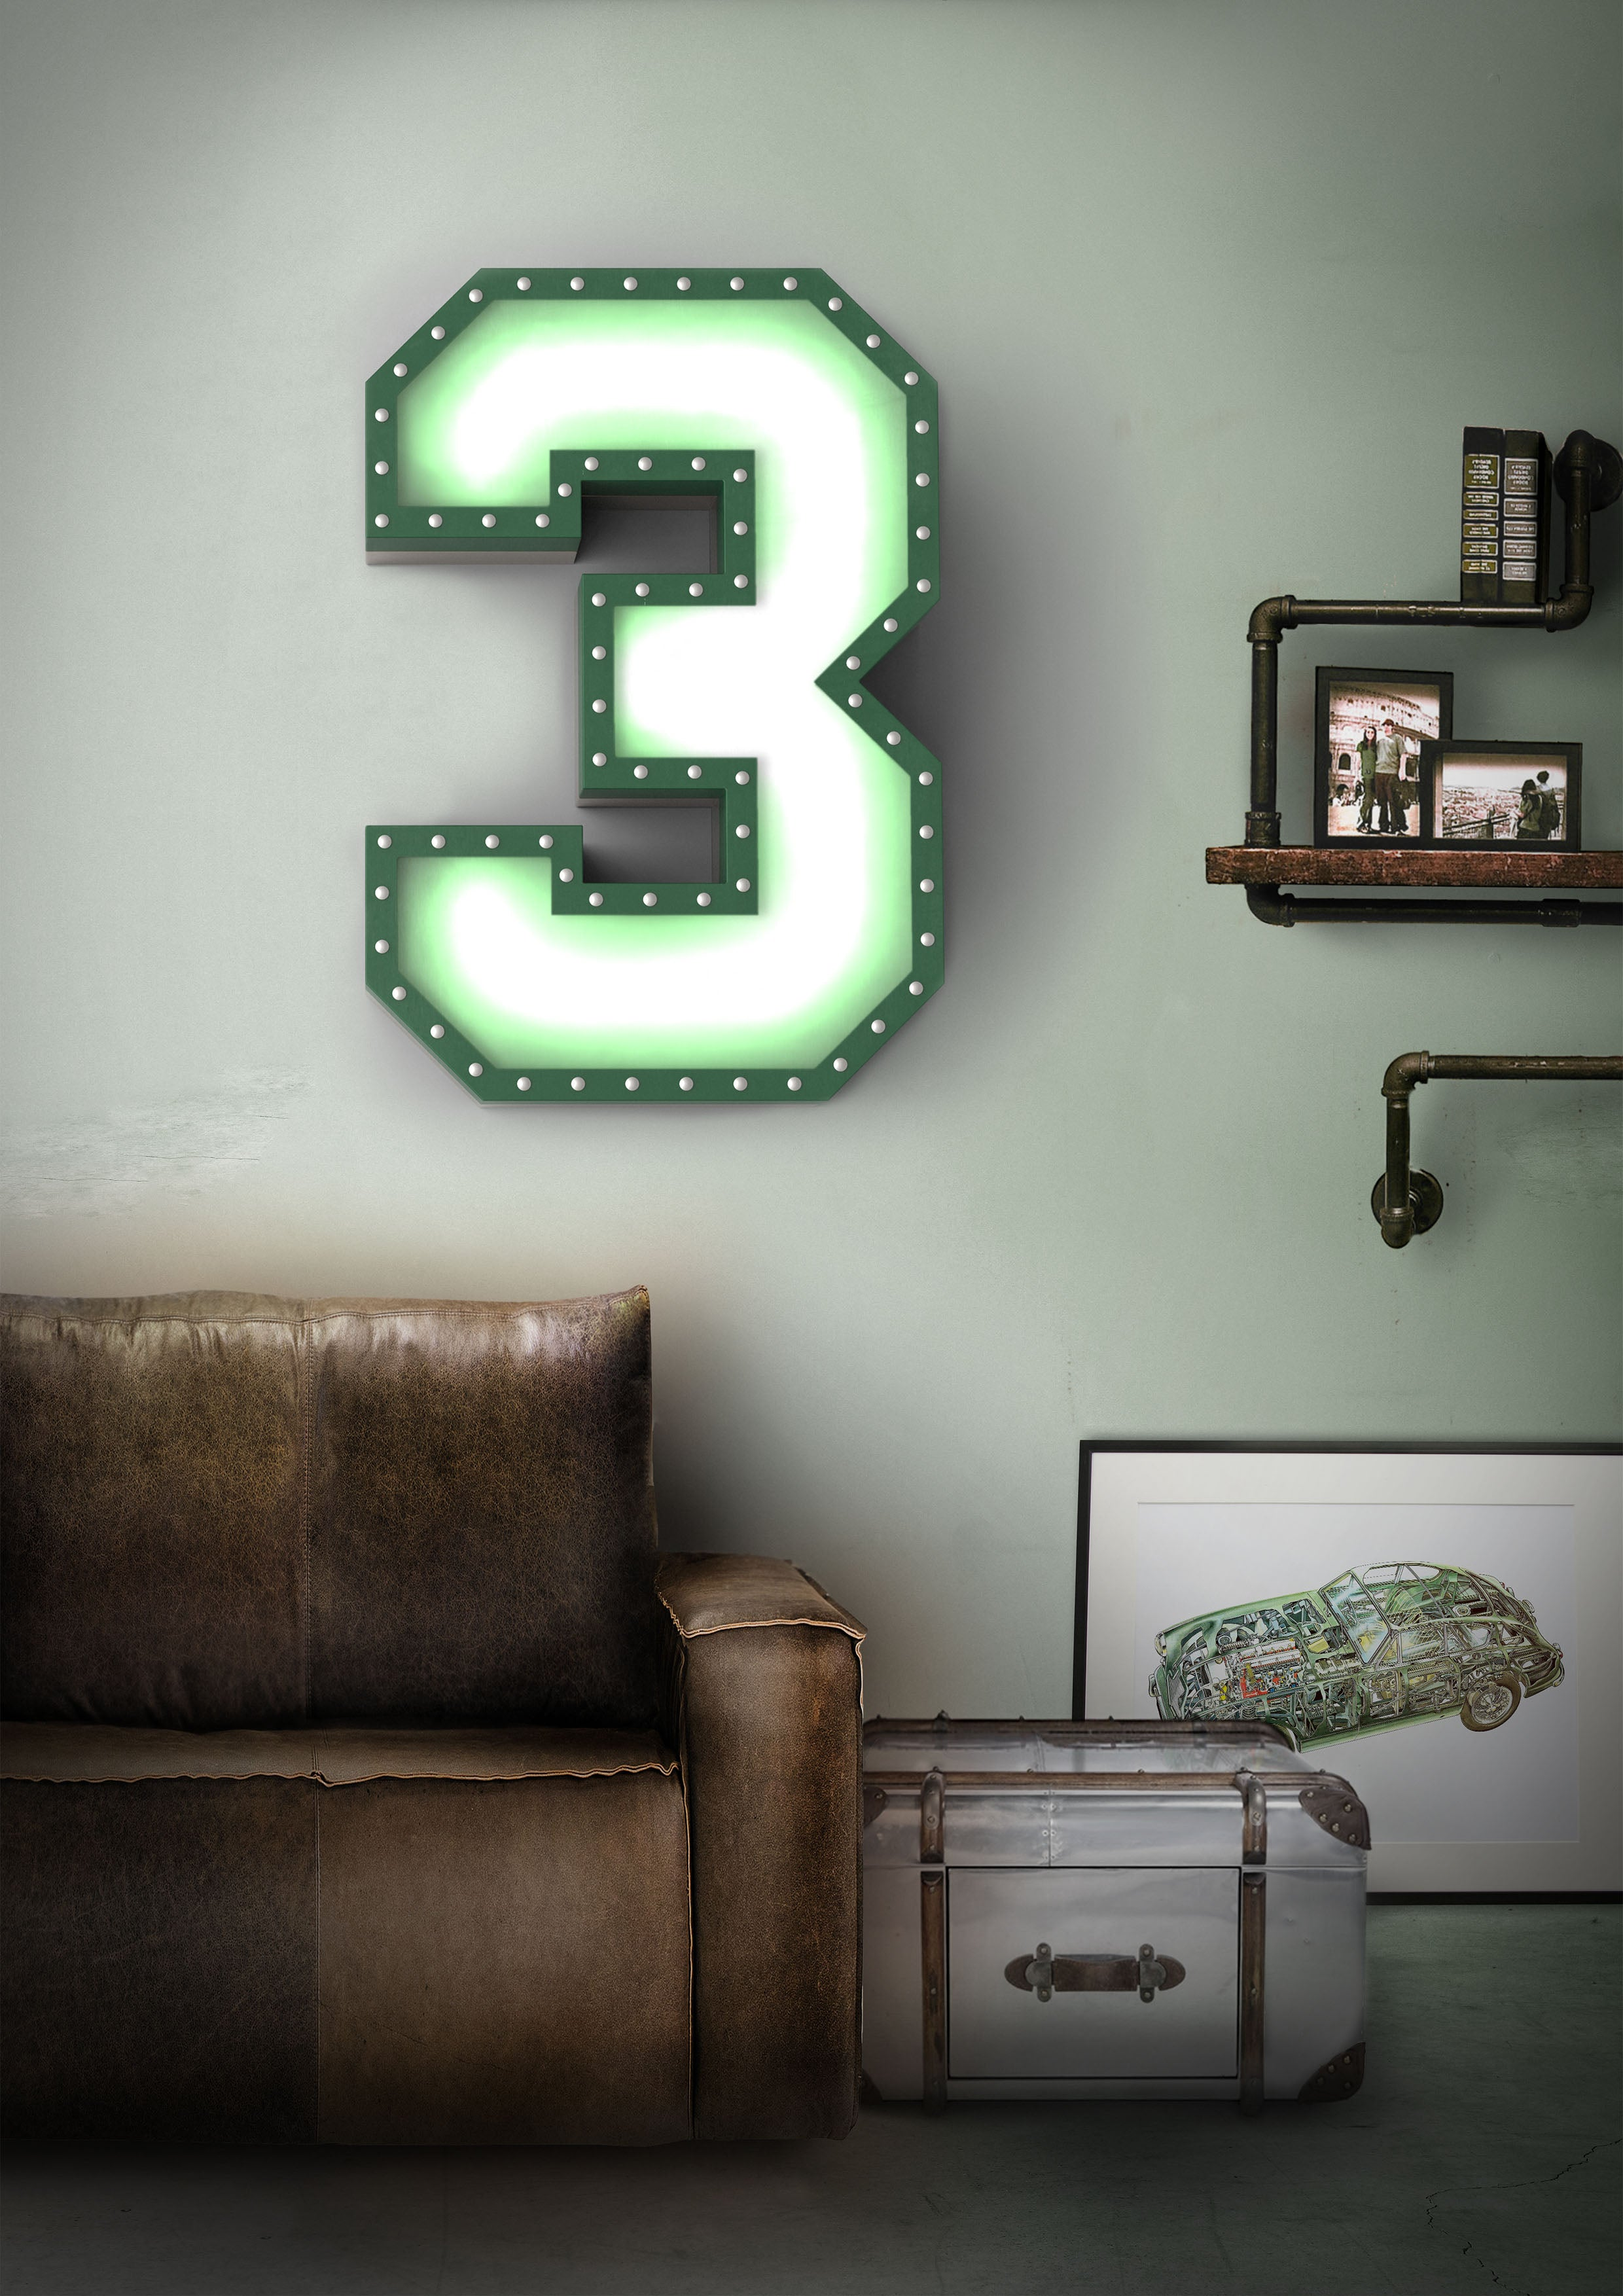 Delightful graphic collection numeral 3